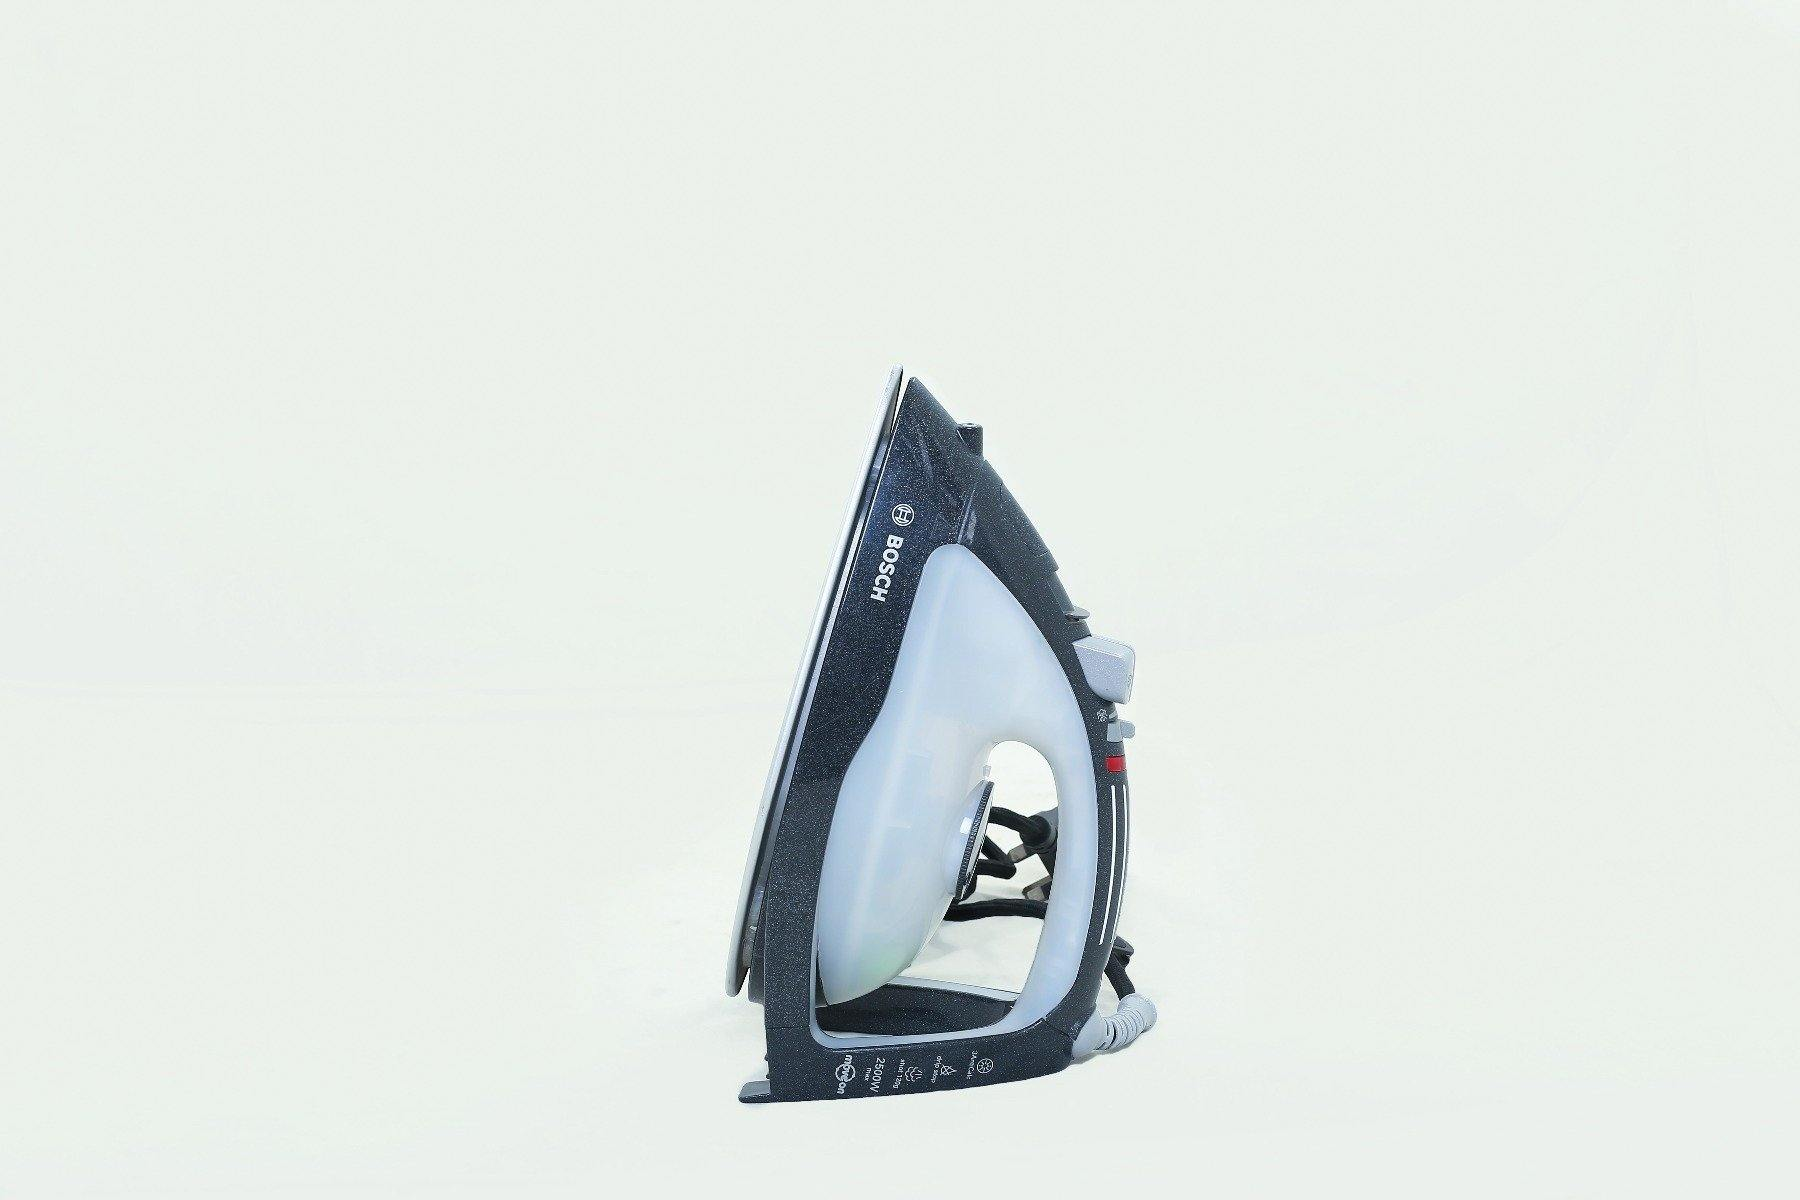 Bosch Steam Iron 2500W